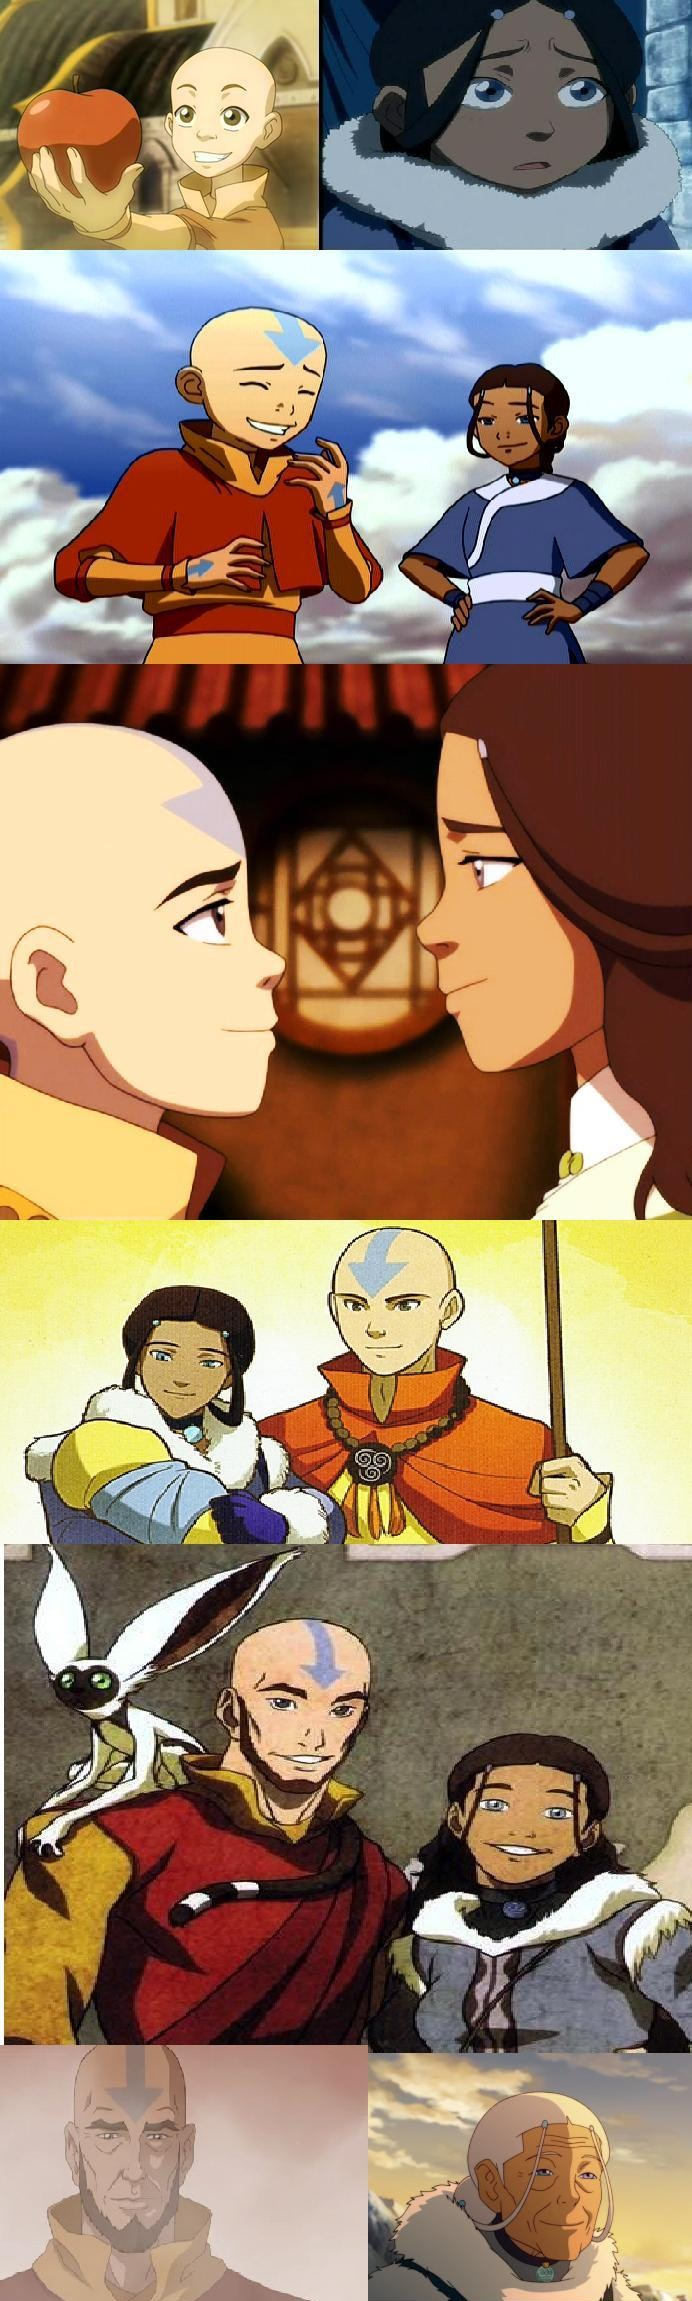 Aang and Katara through the years...OH THE FEELSSSS...